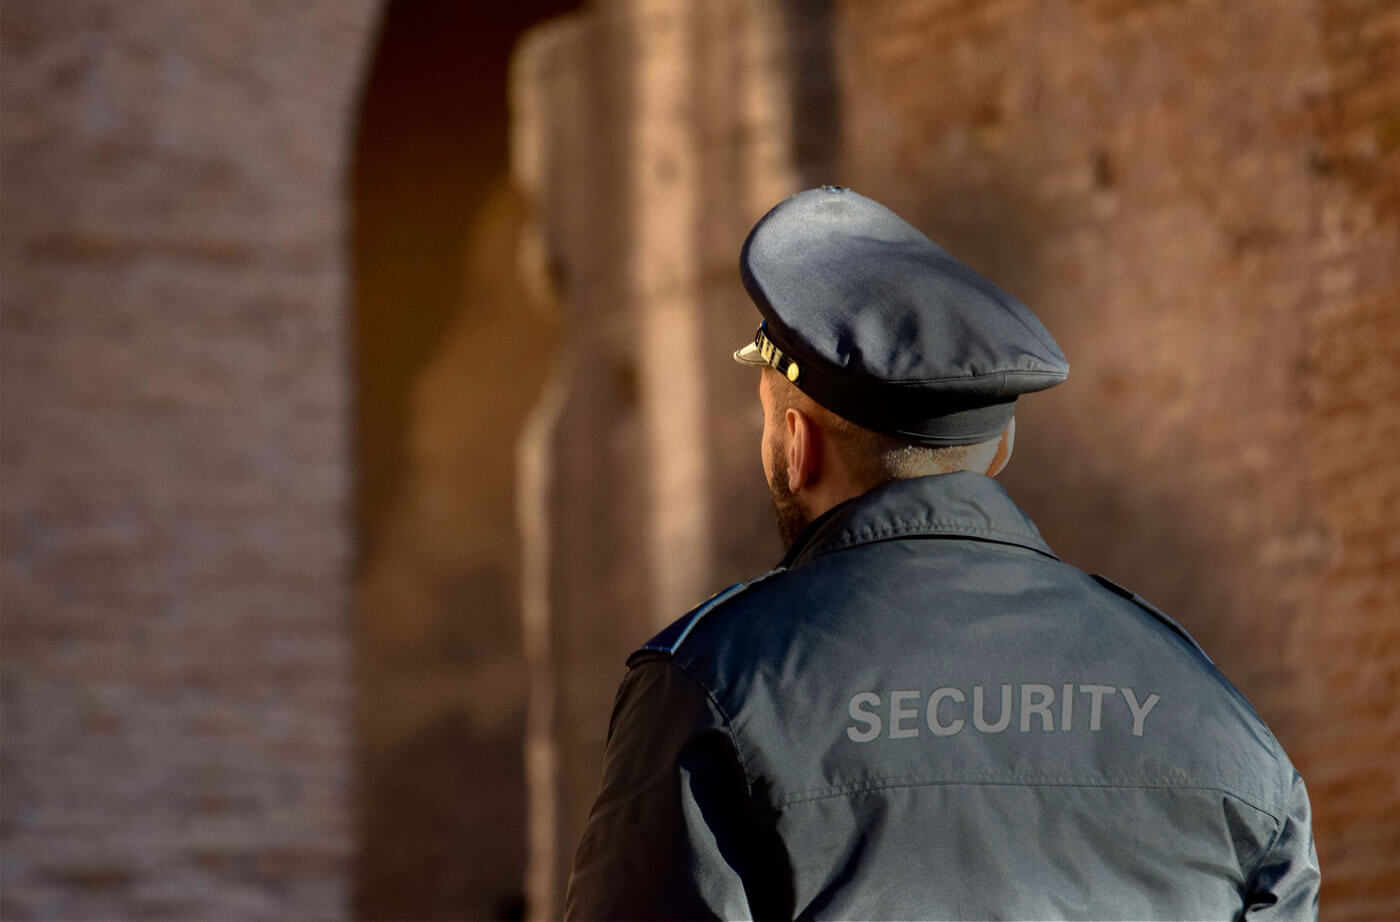 We Provide Security Service